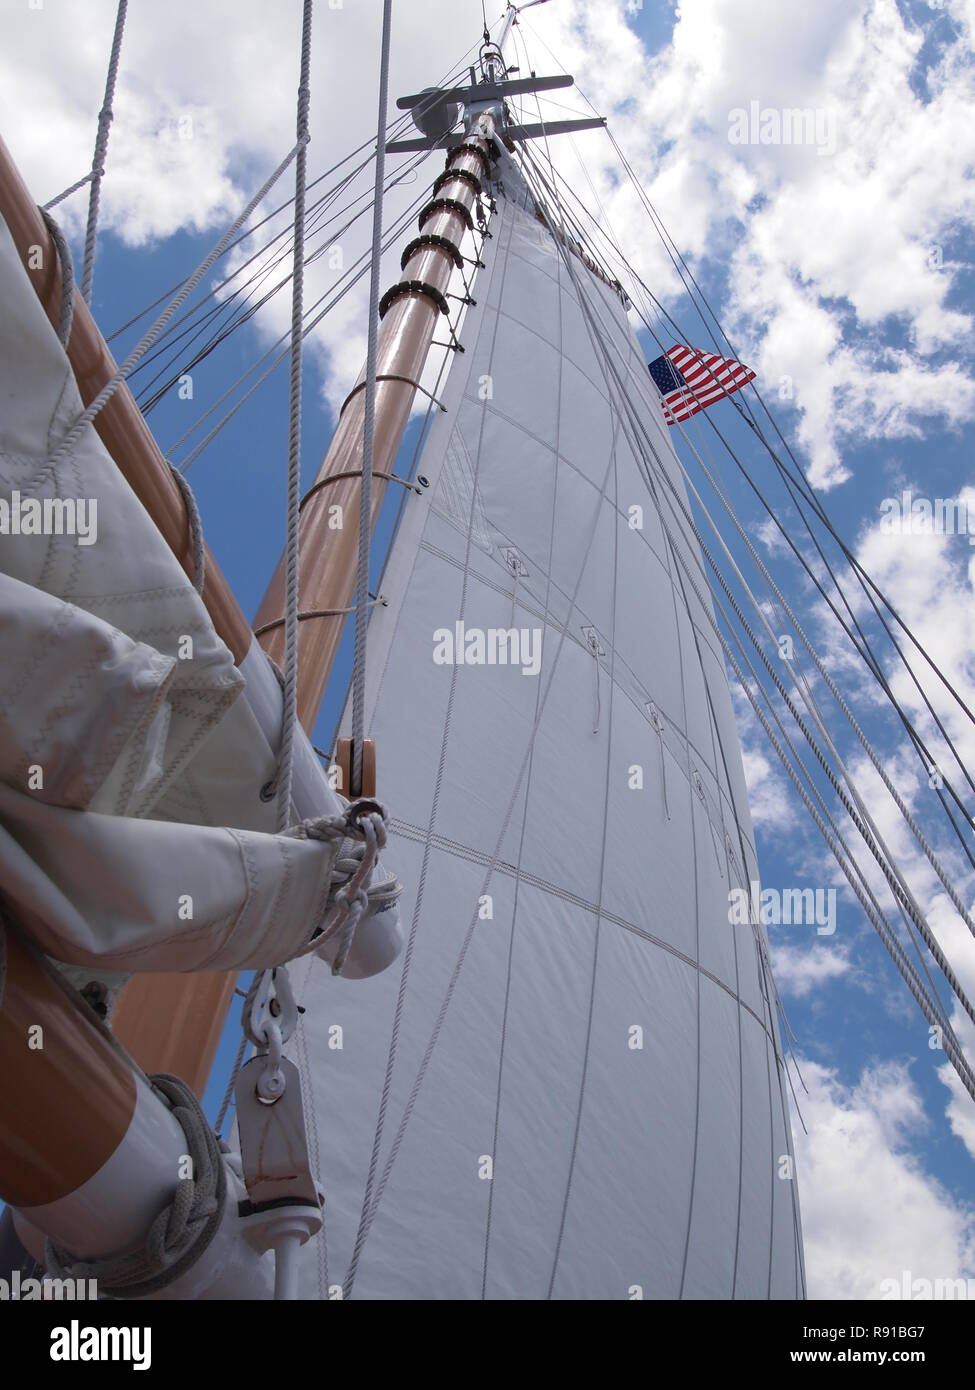 Looking Up at Main Sail on a Sunny Day on a Sailboat - Stock Image